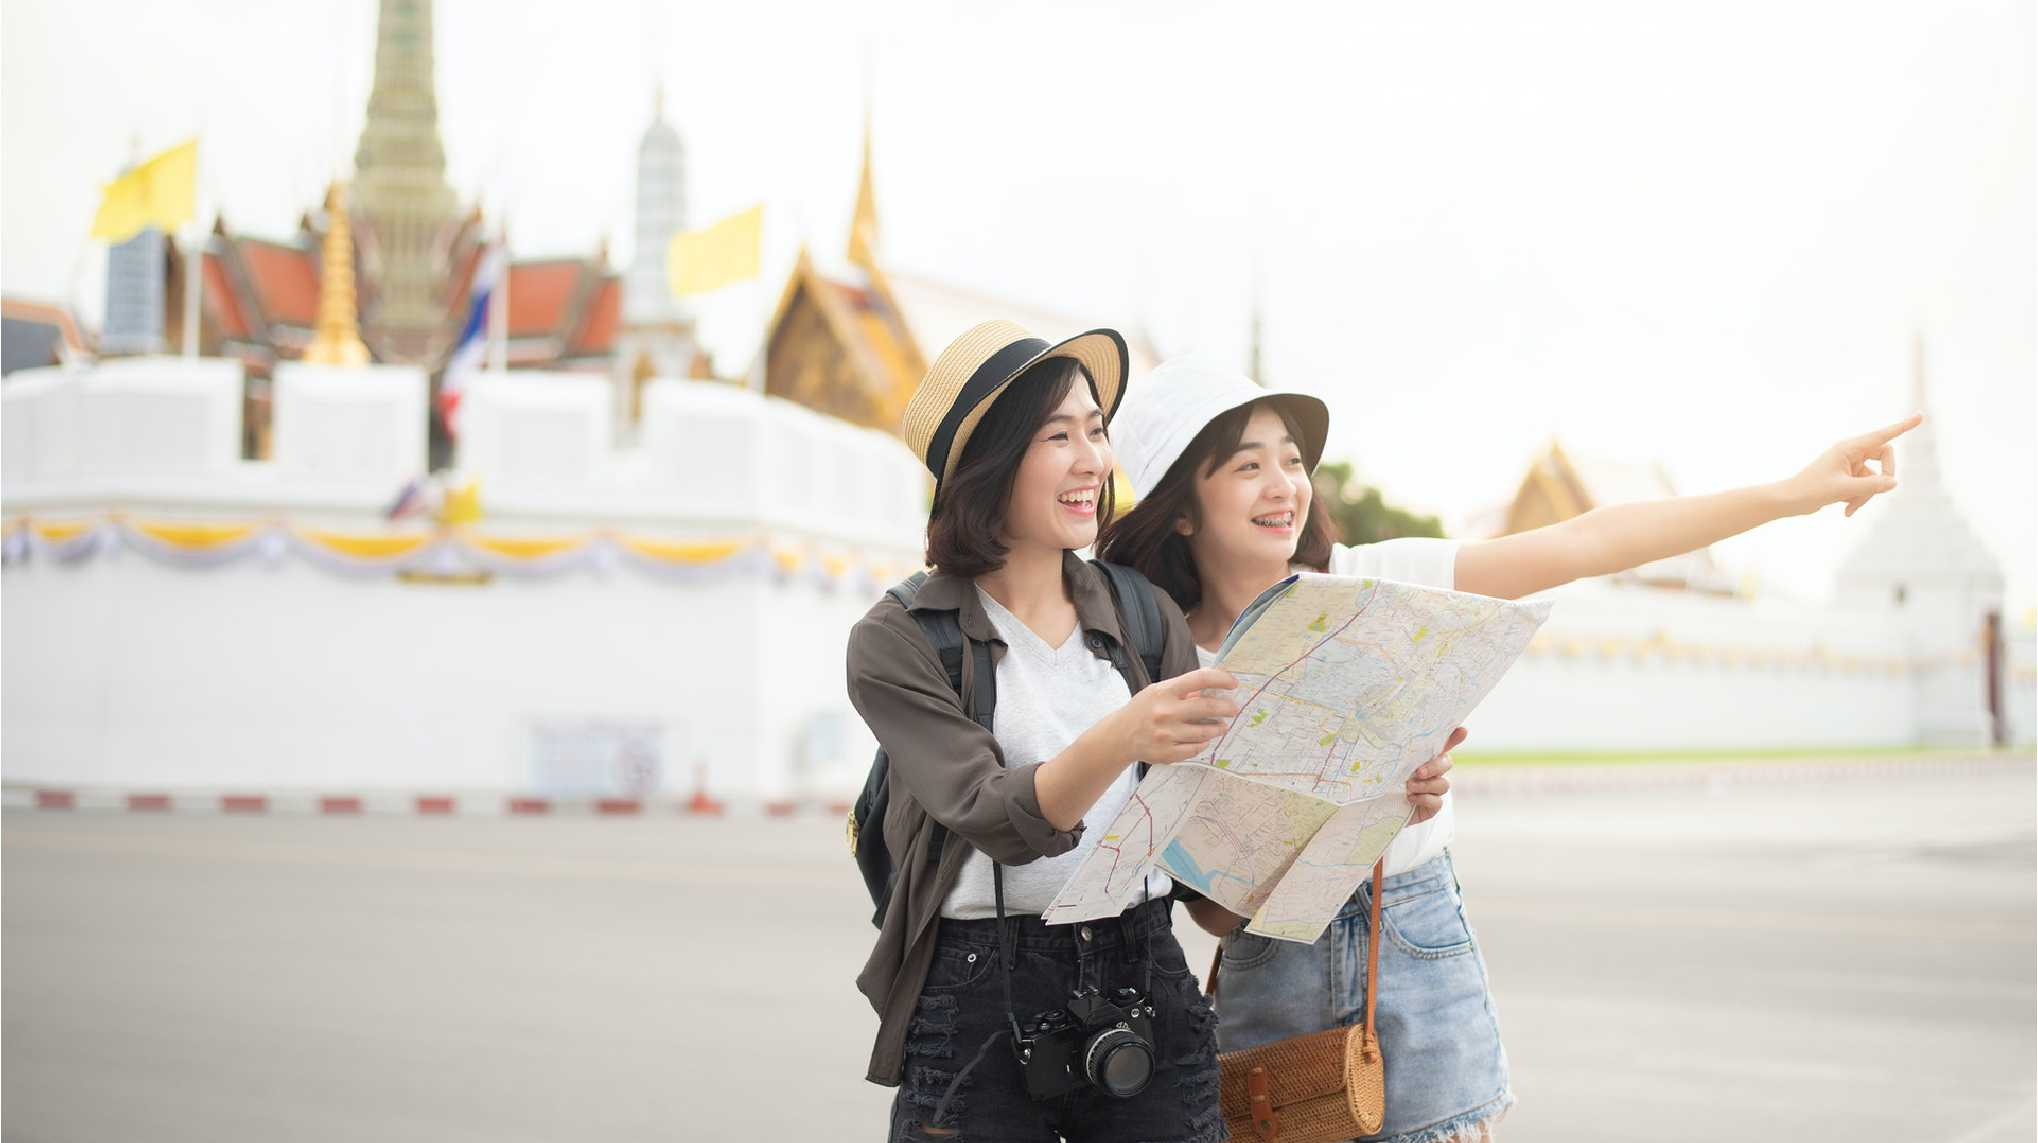 11Thailand Visa Free for Indians Meaning